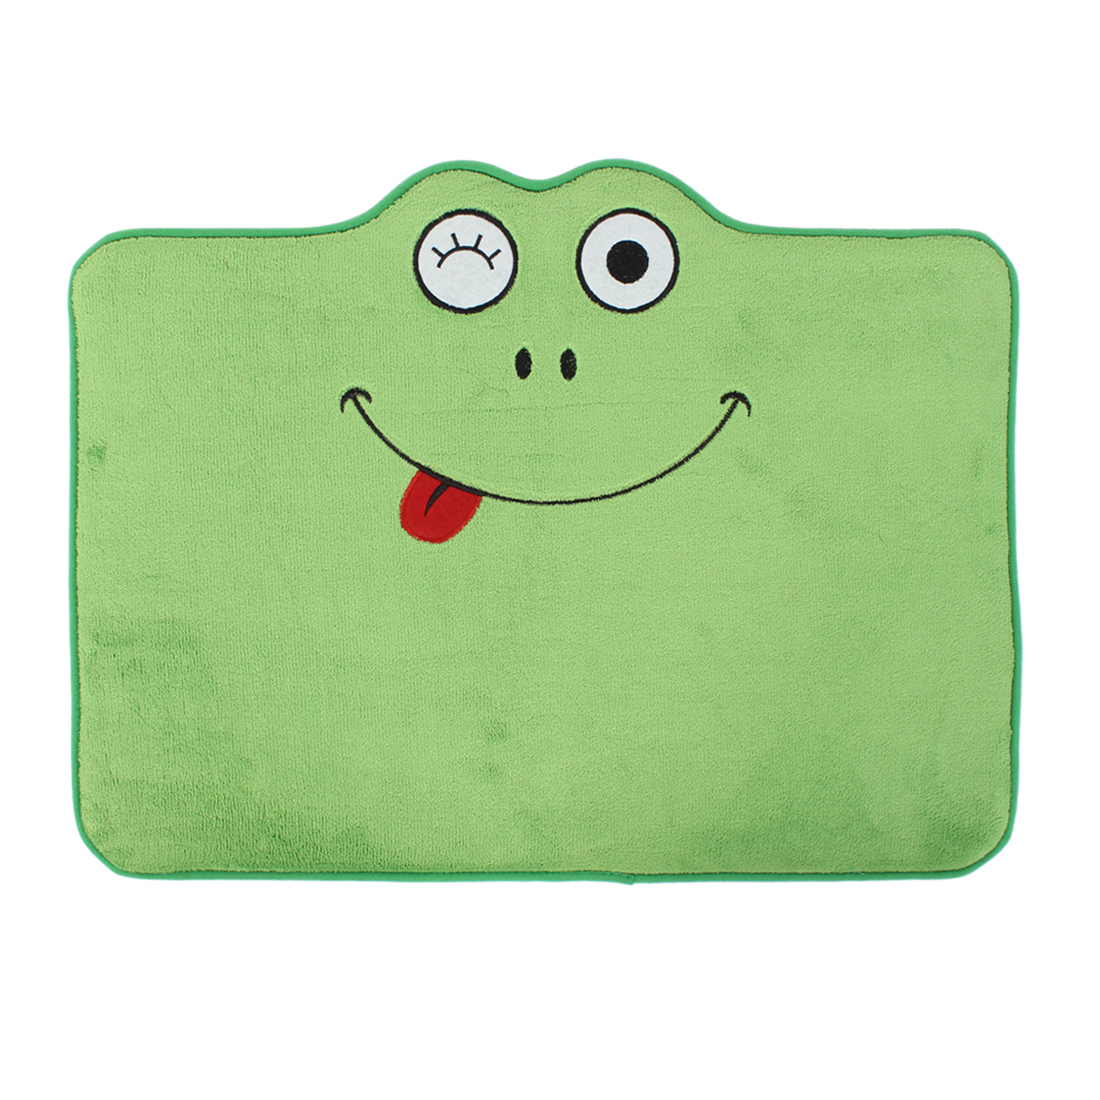 Household Frog Pattern Floor Mat Area Rug Carpet 60cm x 40cm Green